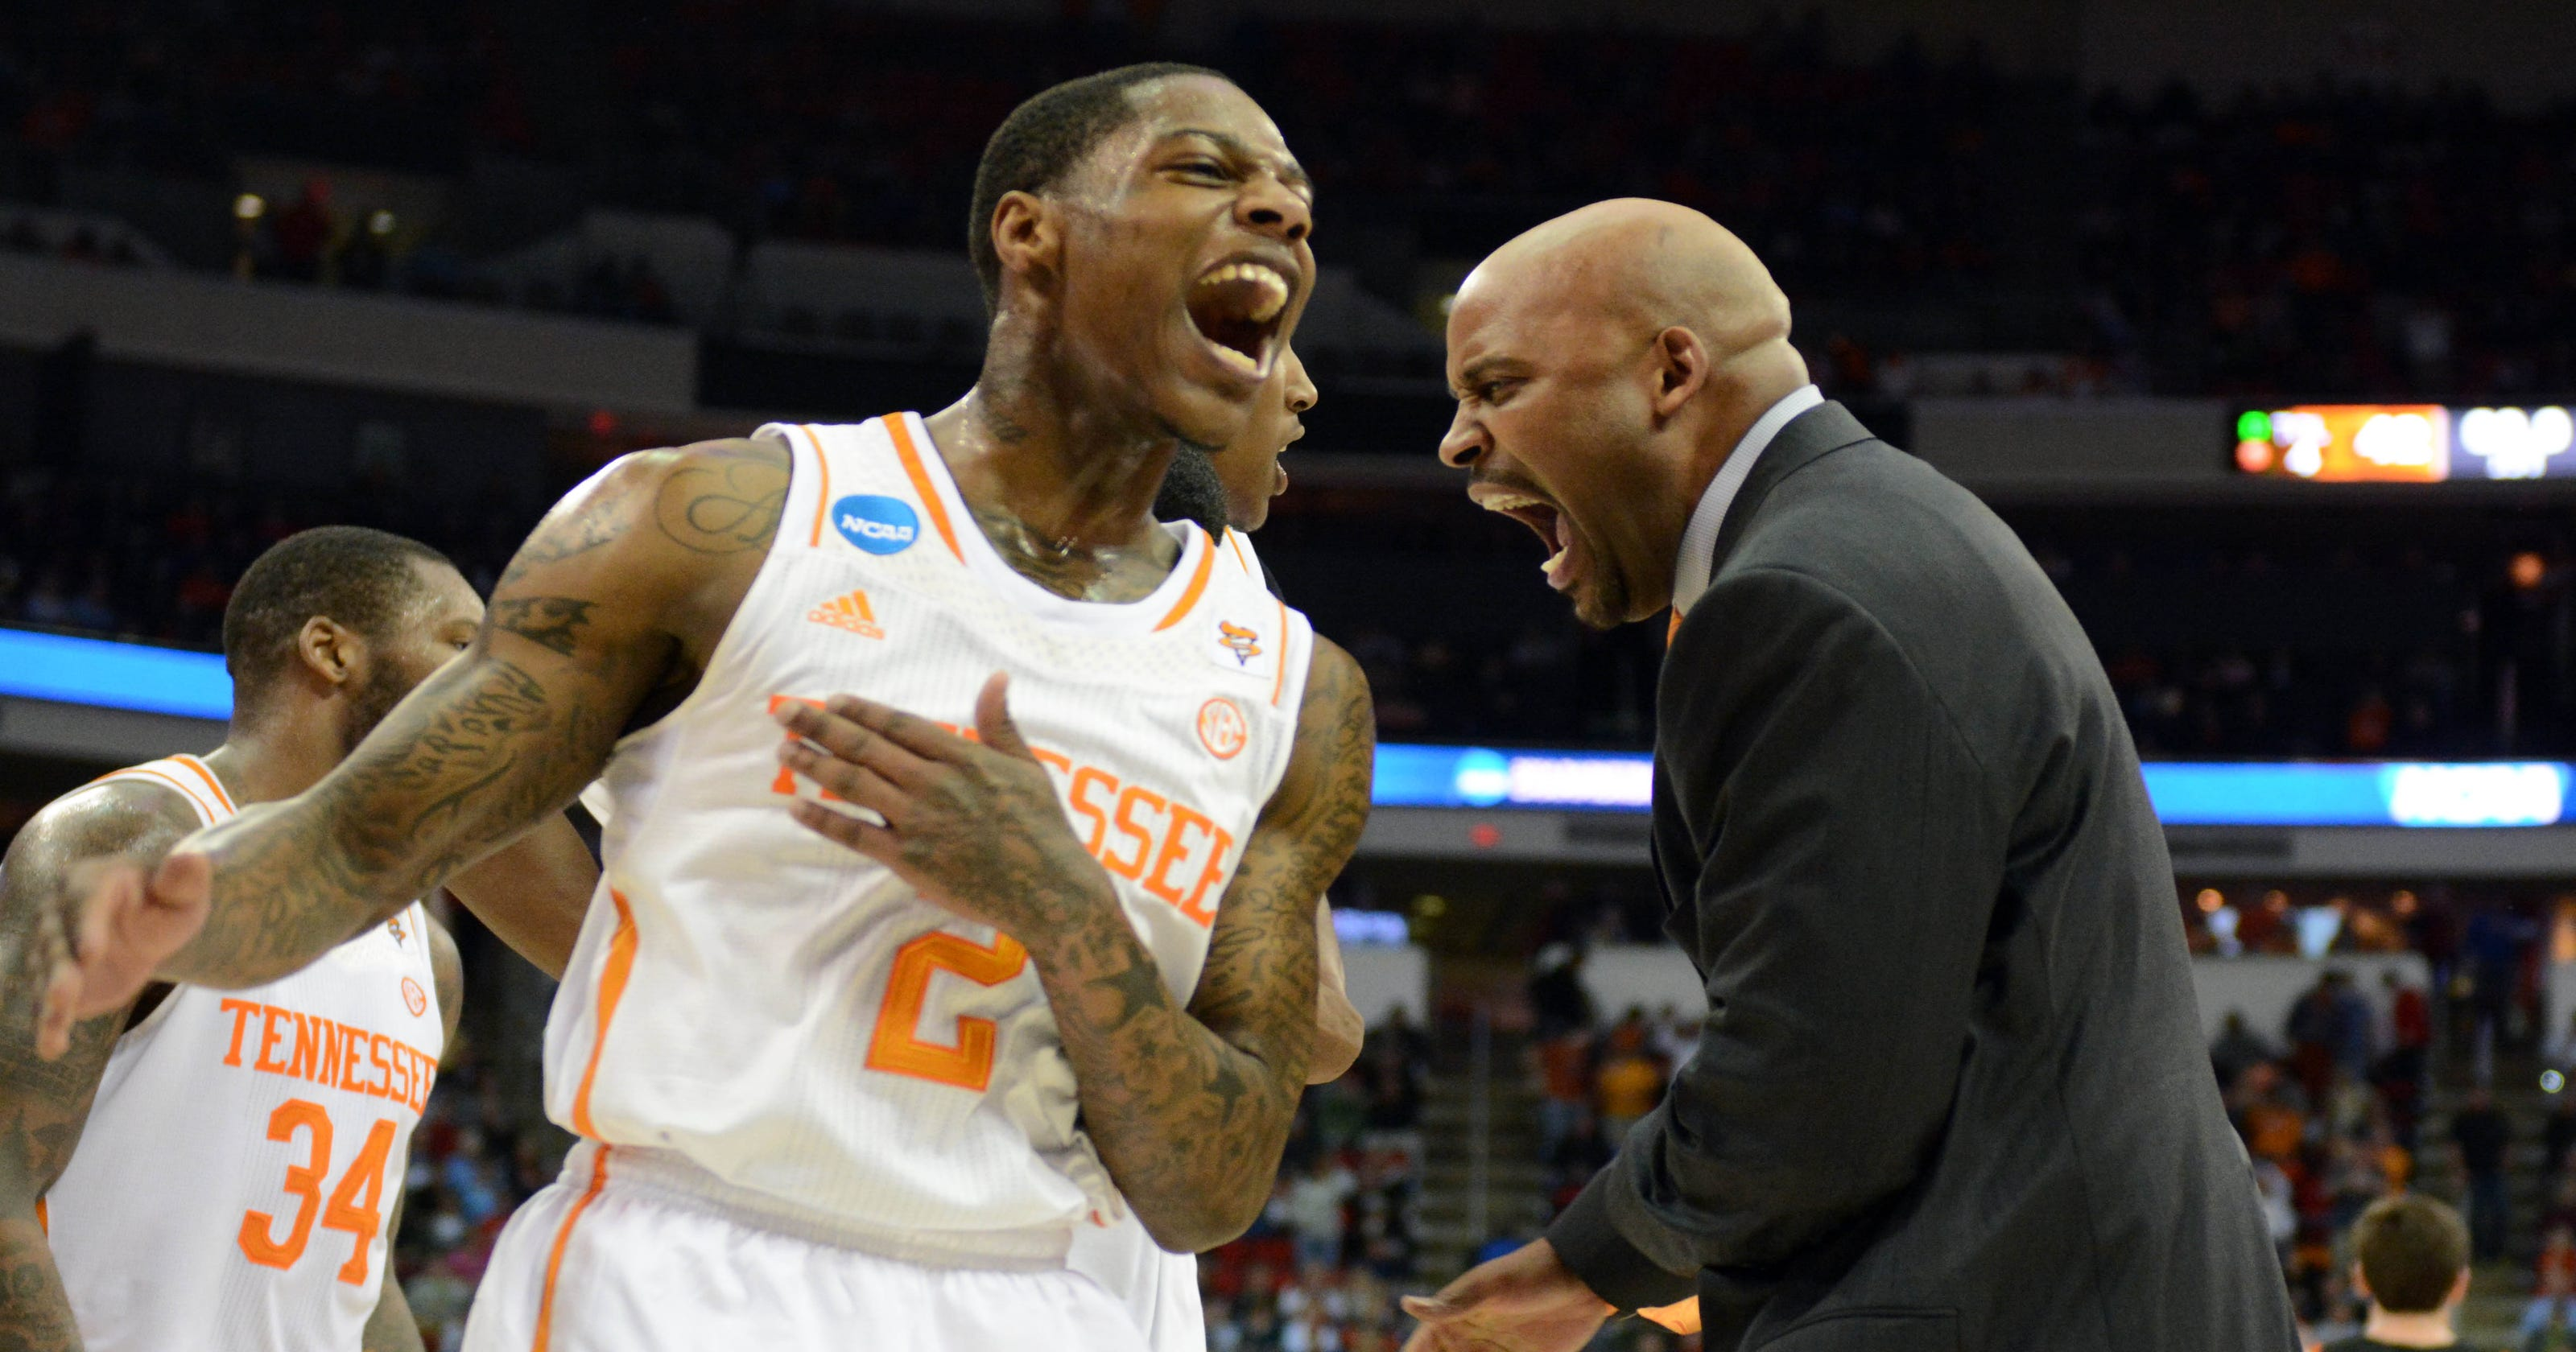 Cuonzo Martin's return puts Tennessee on solid ground